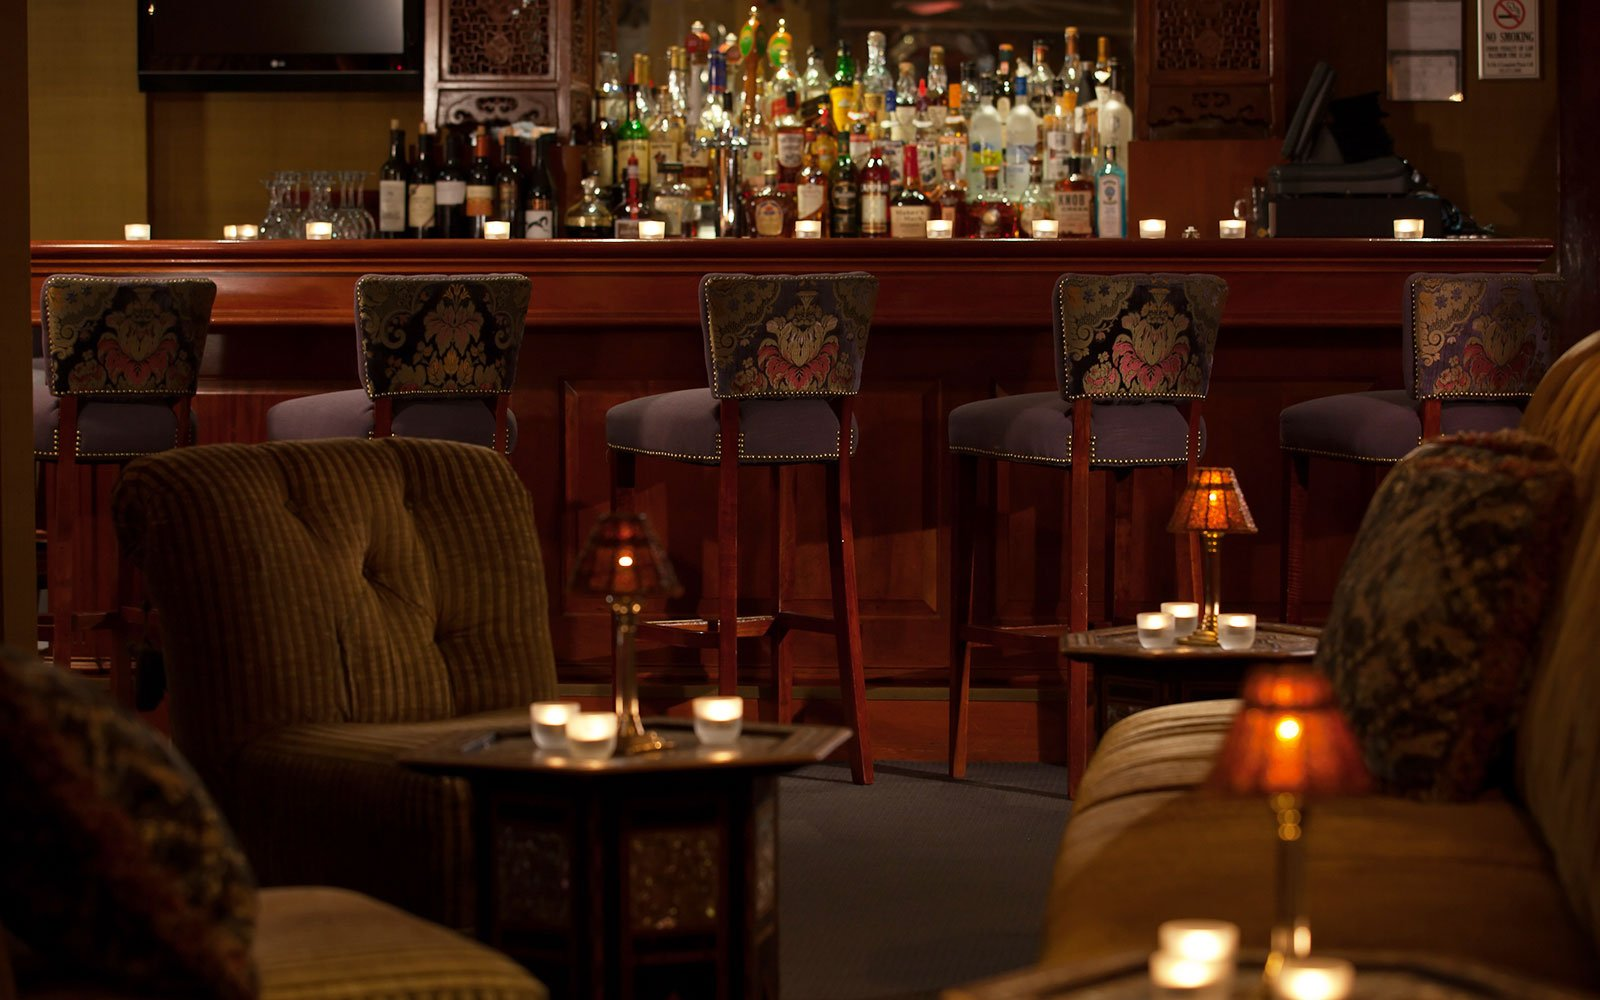 Upscale Washington, DC Bars & Restaurants - Hotel Lombardy